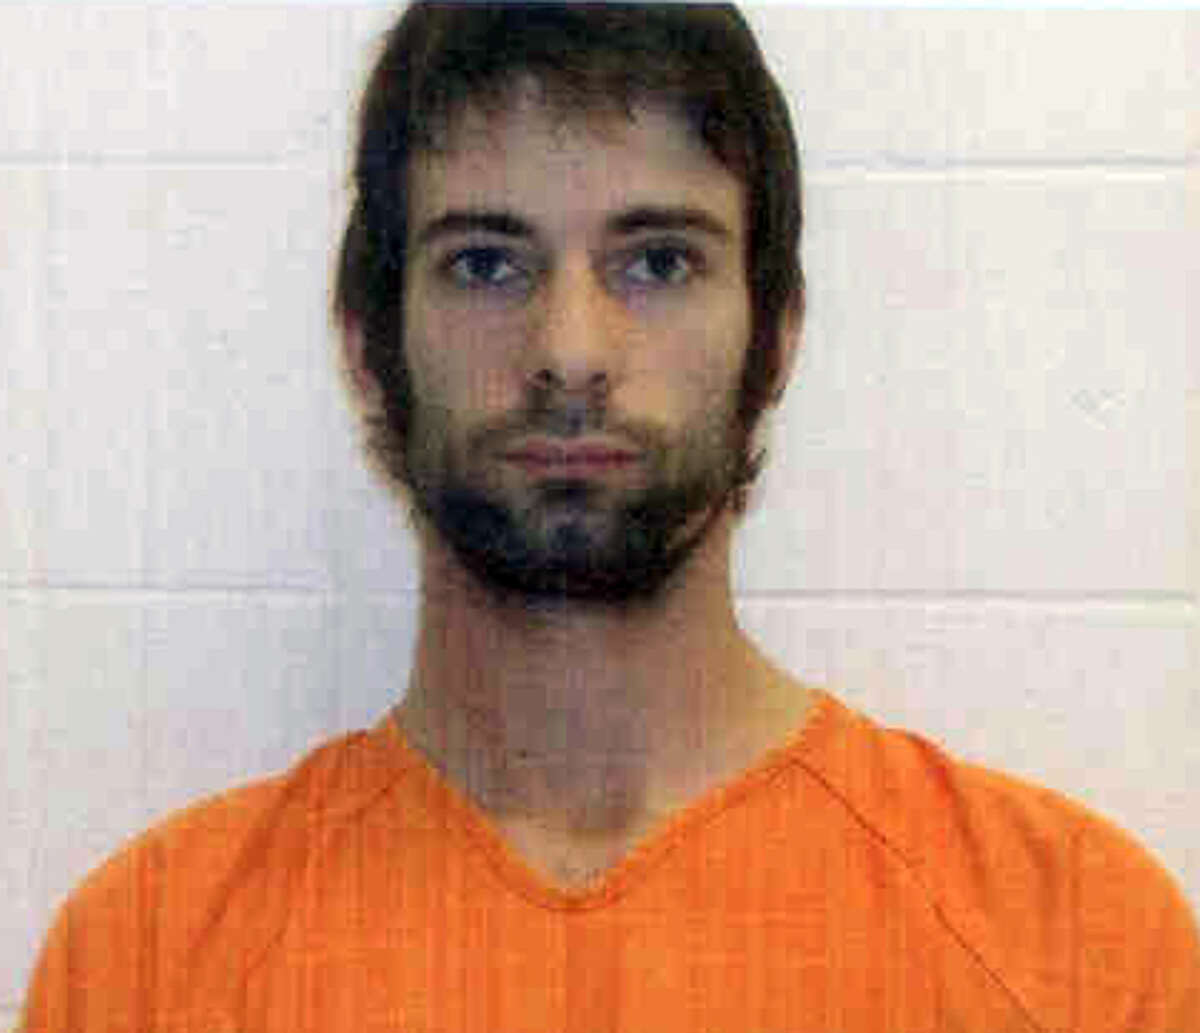 """This photo provided by the Erath County Sheriff?s Office shows Eddie Ray Routh. He was charged with murder in connection with a shooting at a central Texas gun range that killed former Navy SEAL and """"American Sniper"""" author Chris Kyle and Chad Littlefield, the Texas Department of Public Safety said Sunday, Feb. 3, 2013. (AP Photo/ Erath County Sheriff's Office)"""